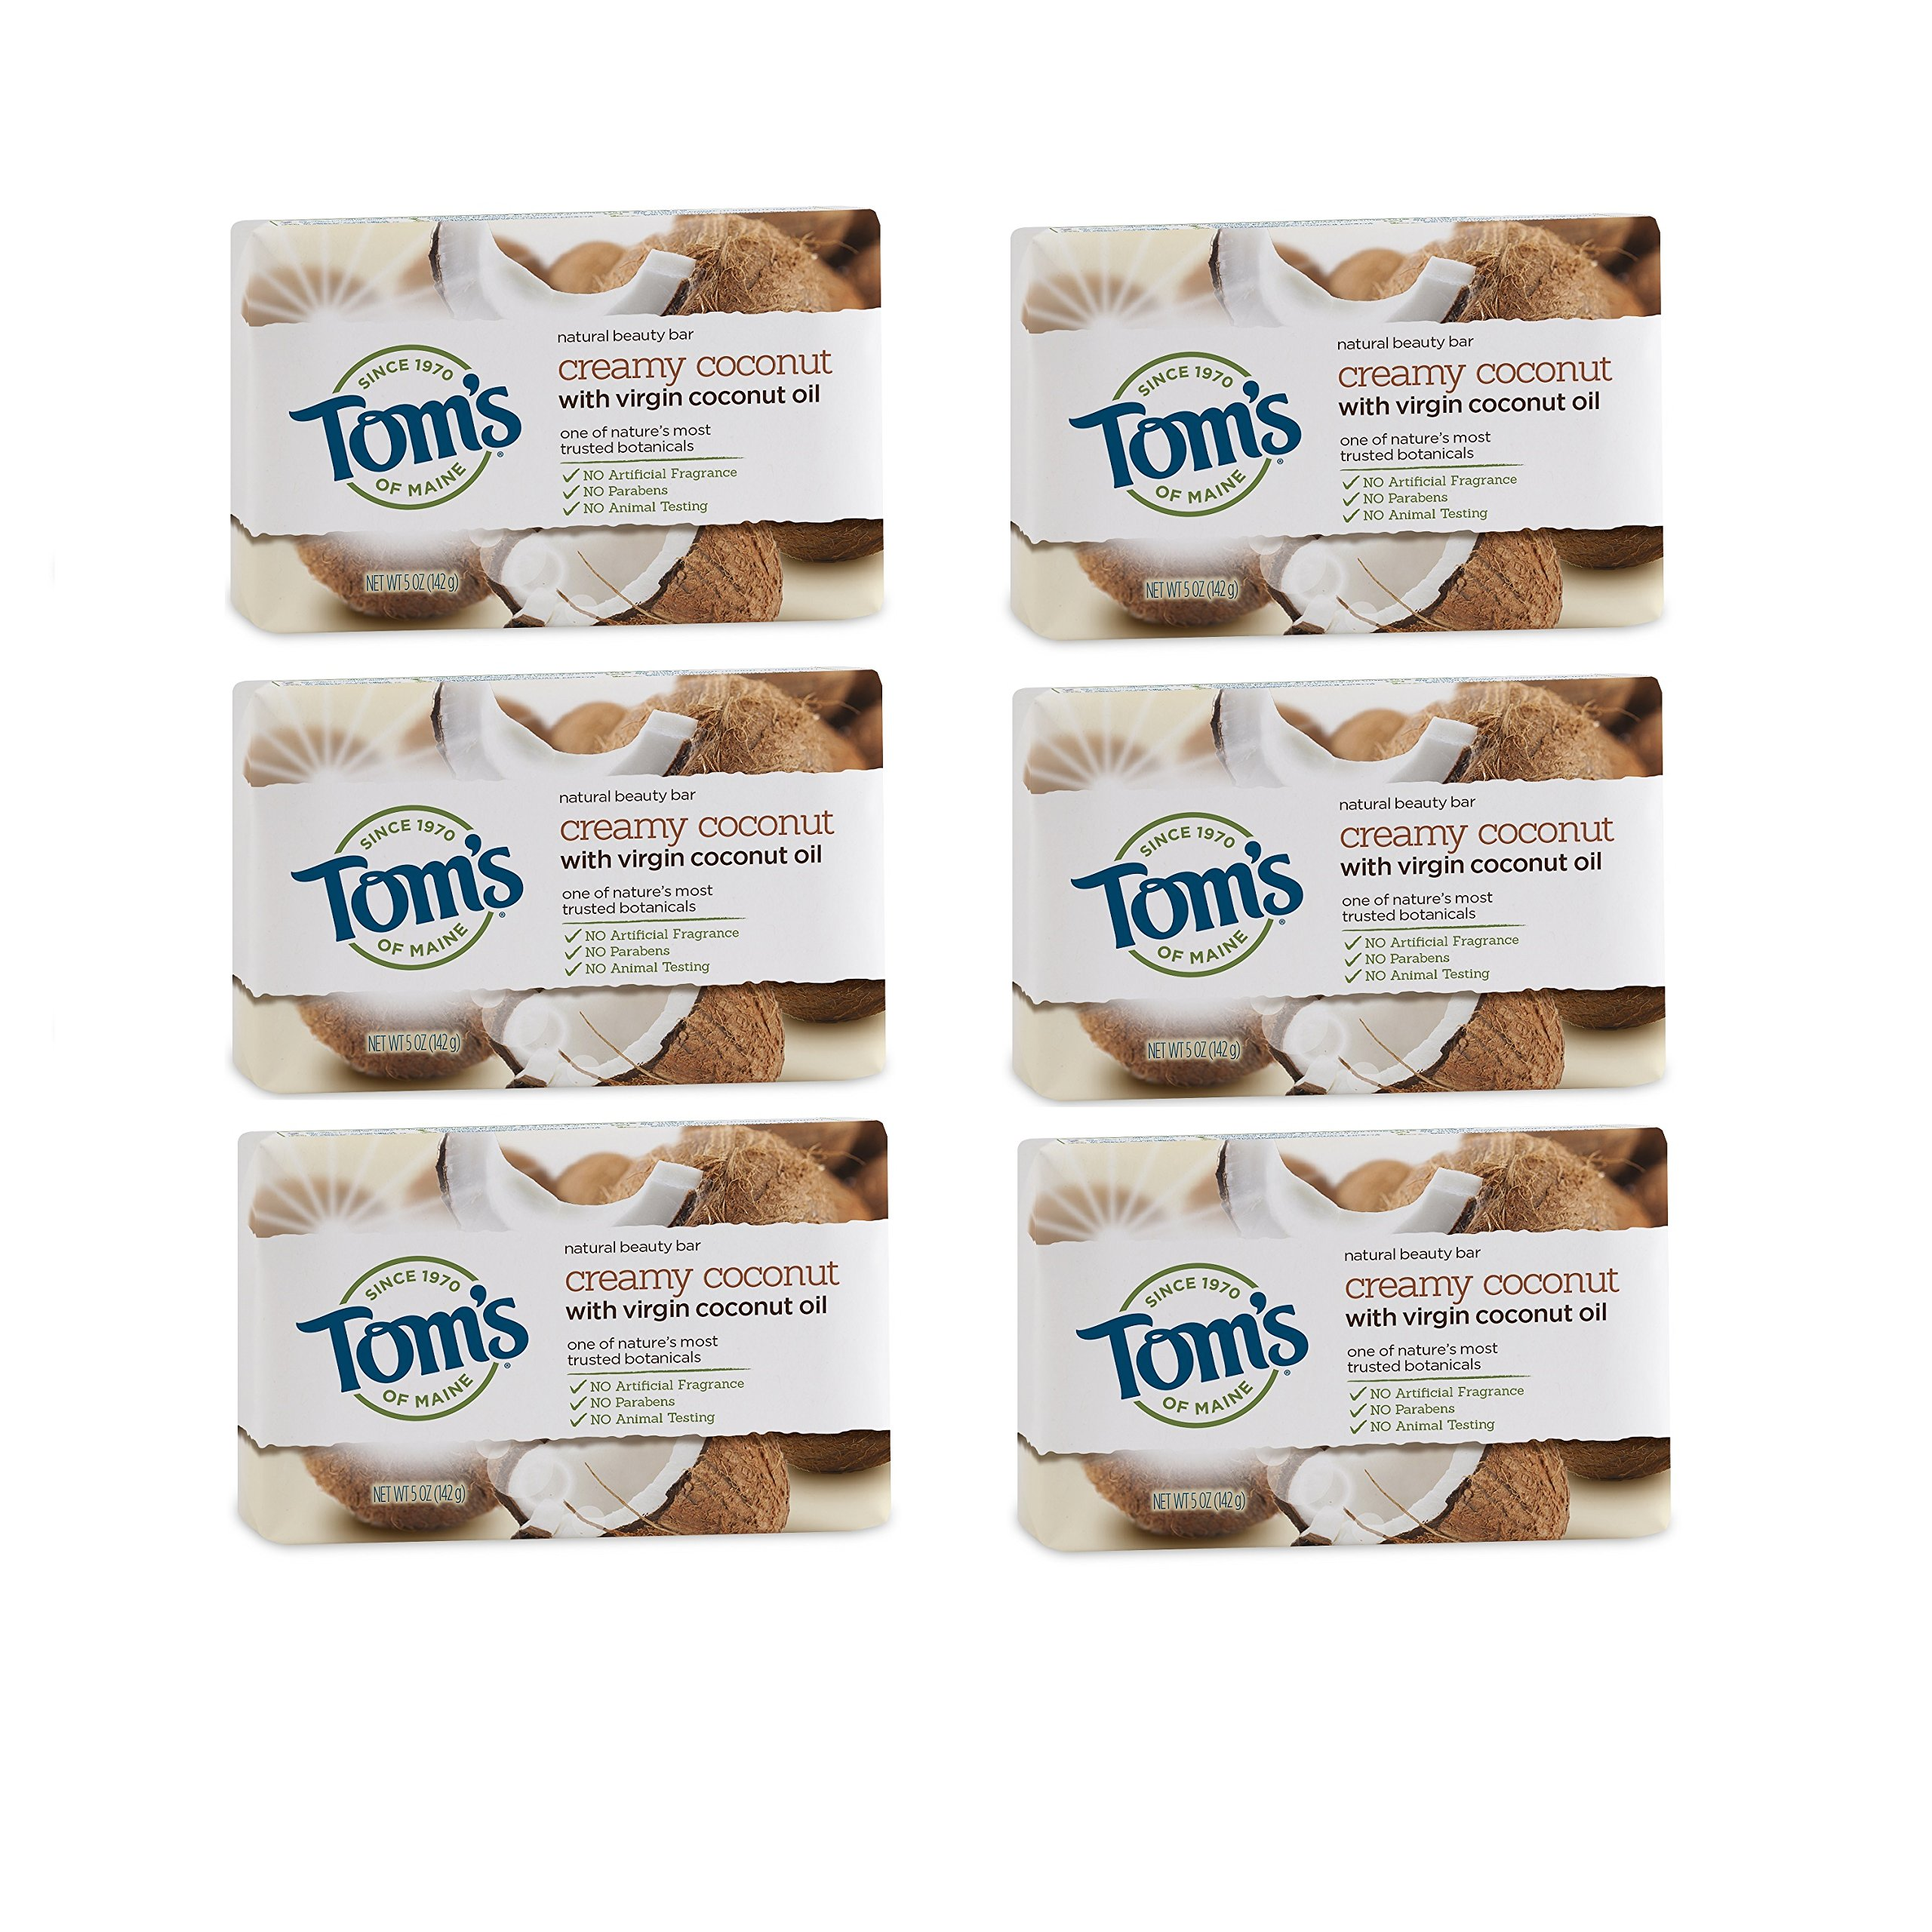 Tom's of Maine Natural Beauty Bar, Bar Soap, Natural Soap, Creamy Coconut with Virgin Coconut Oil, 5 Ounce, 6-Pack by Tom's of Maine